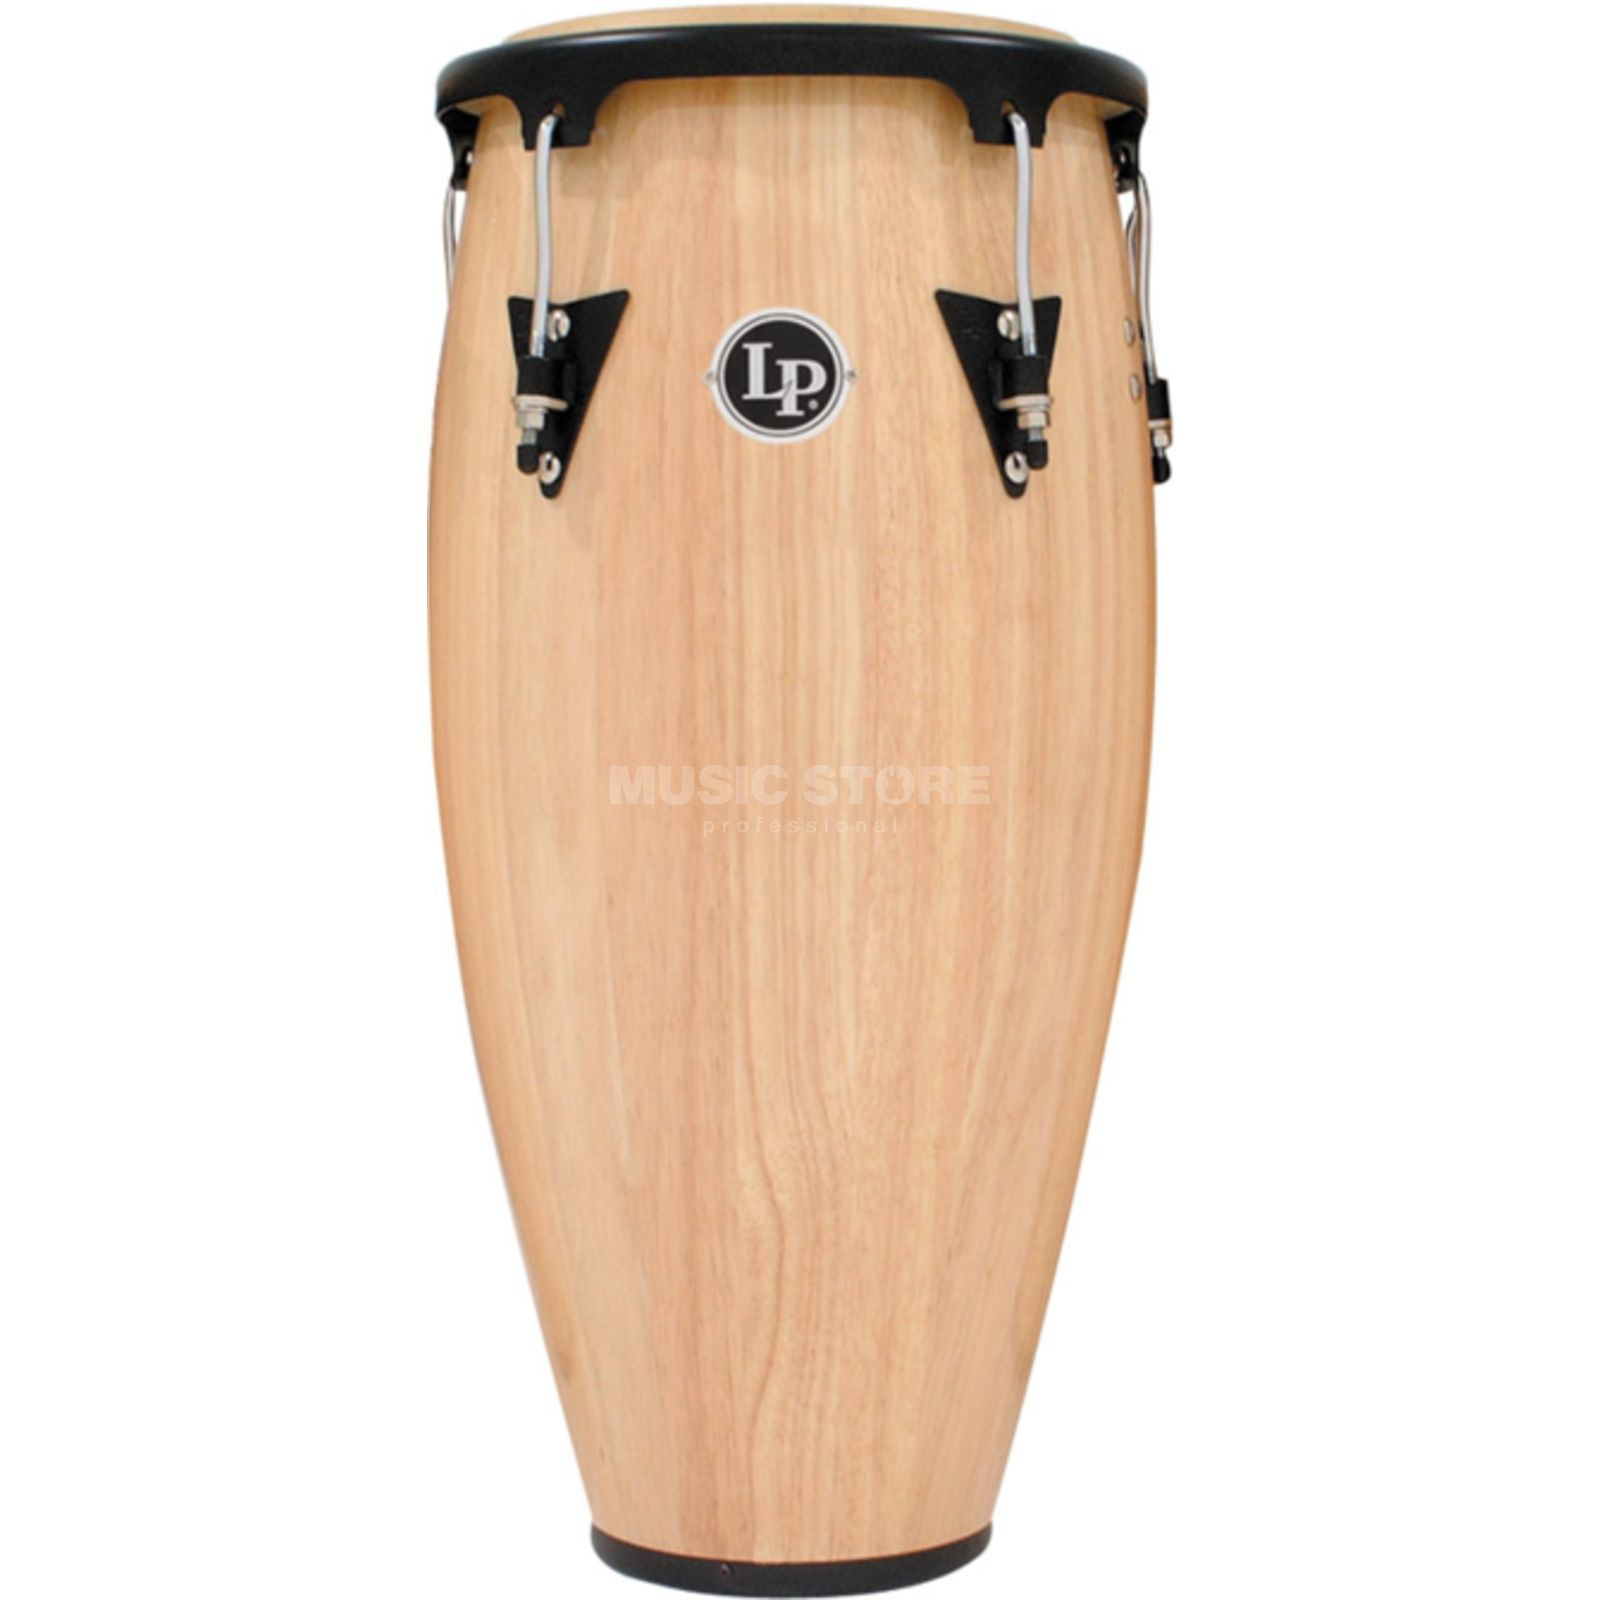 "Latin Percussion Aspire Conga LPA611-AW, 11"" Conga, Natural Wood #AW Produktbild"